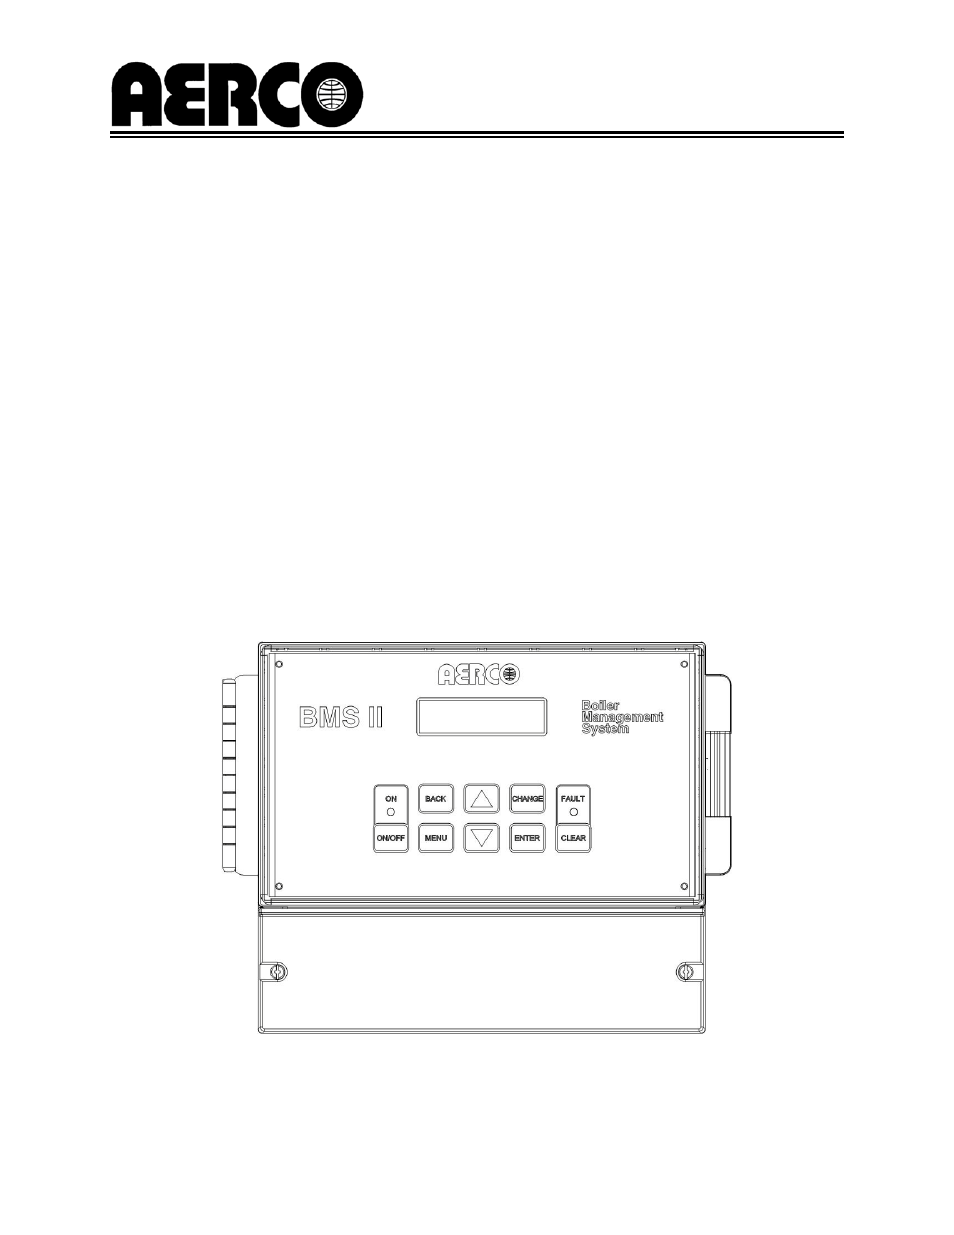 Aerco Boiler Wiring Diagram Free For You Bms System Ii User Manual 108 Pages Rh Manualsdir Com Gas